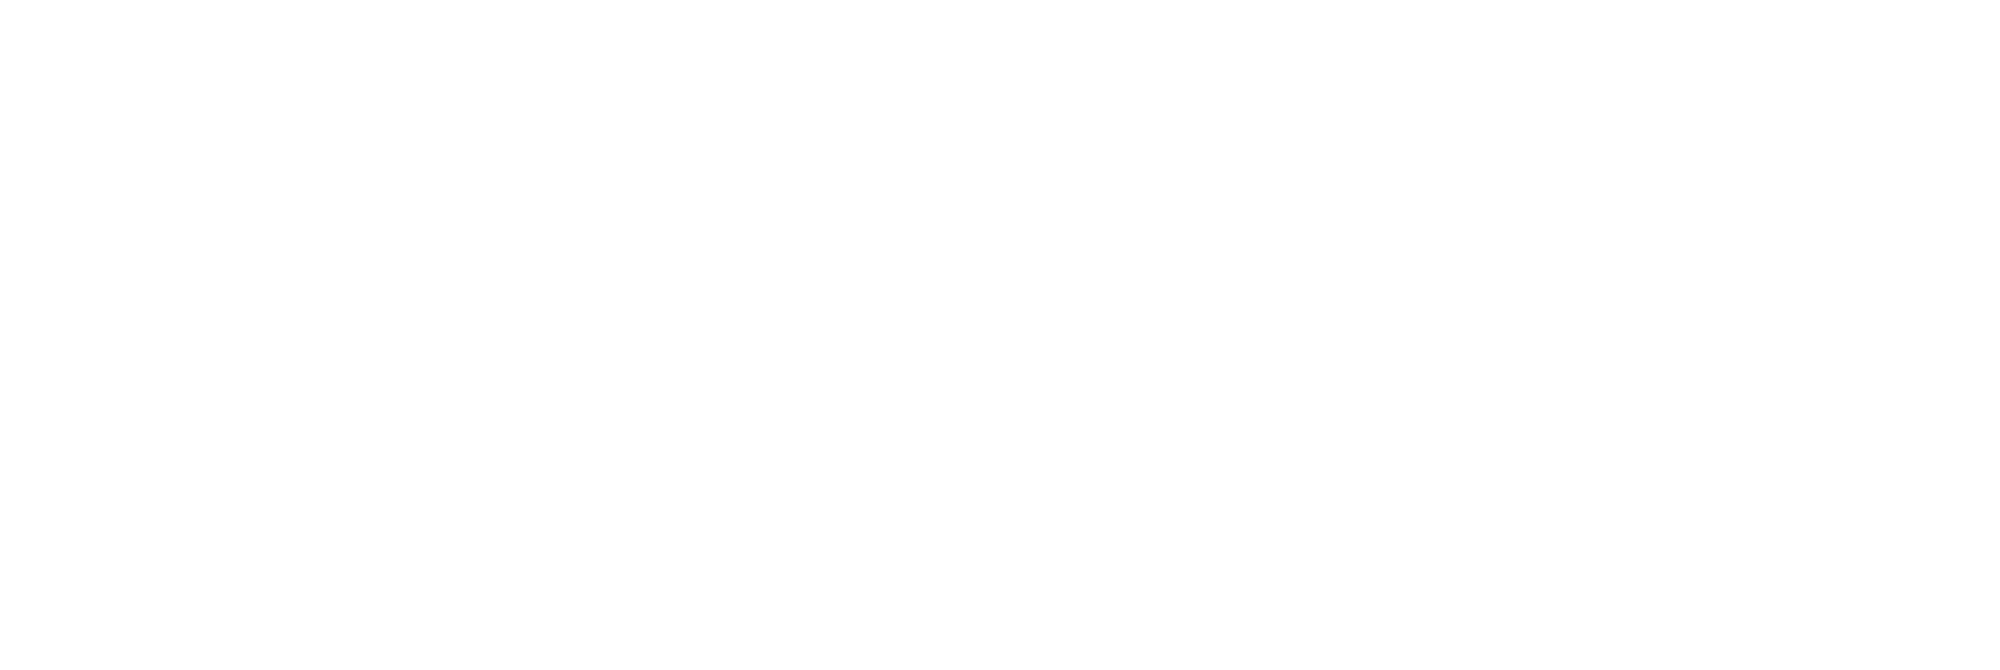 new-logo-mountain-white